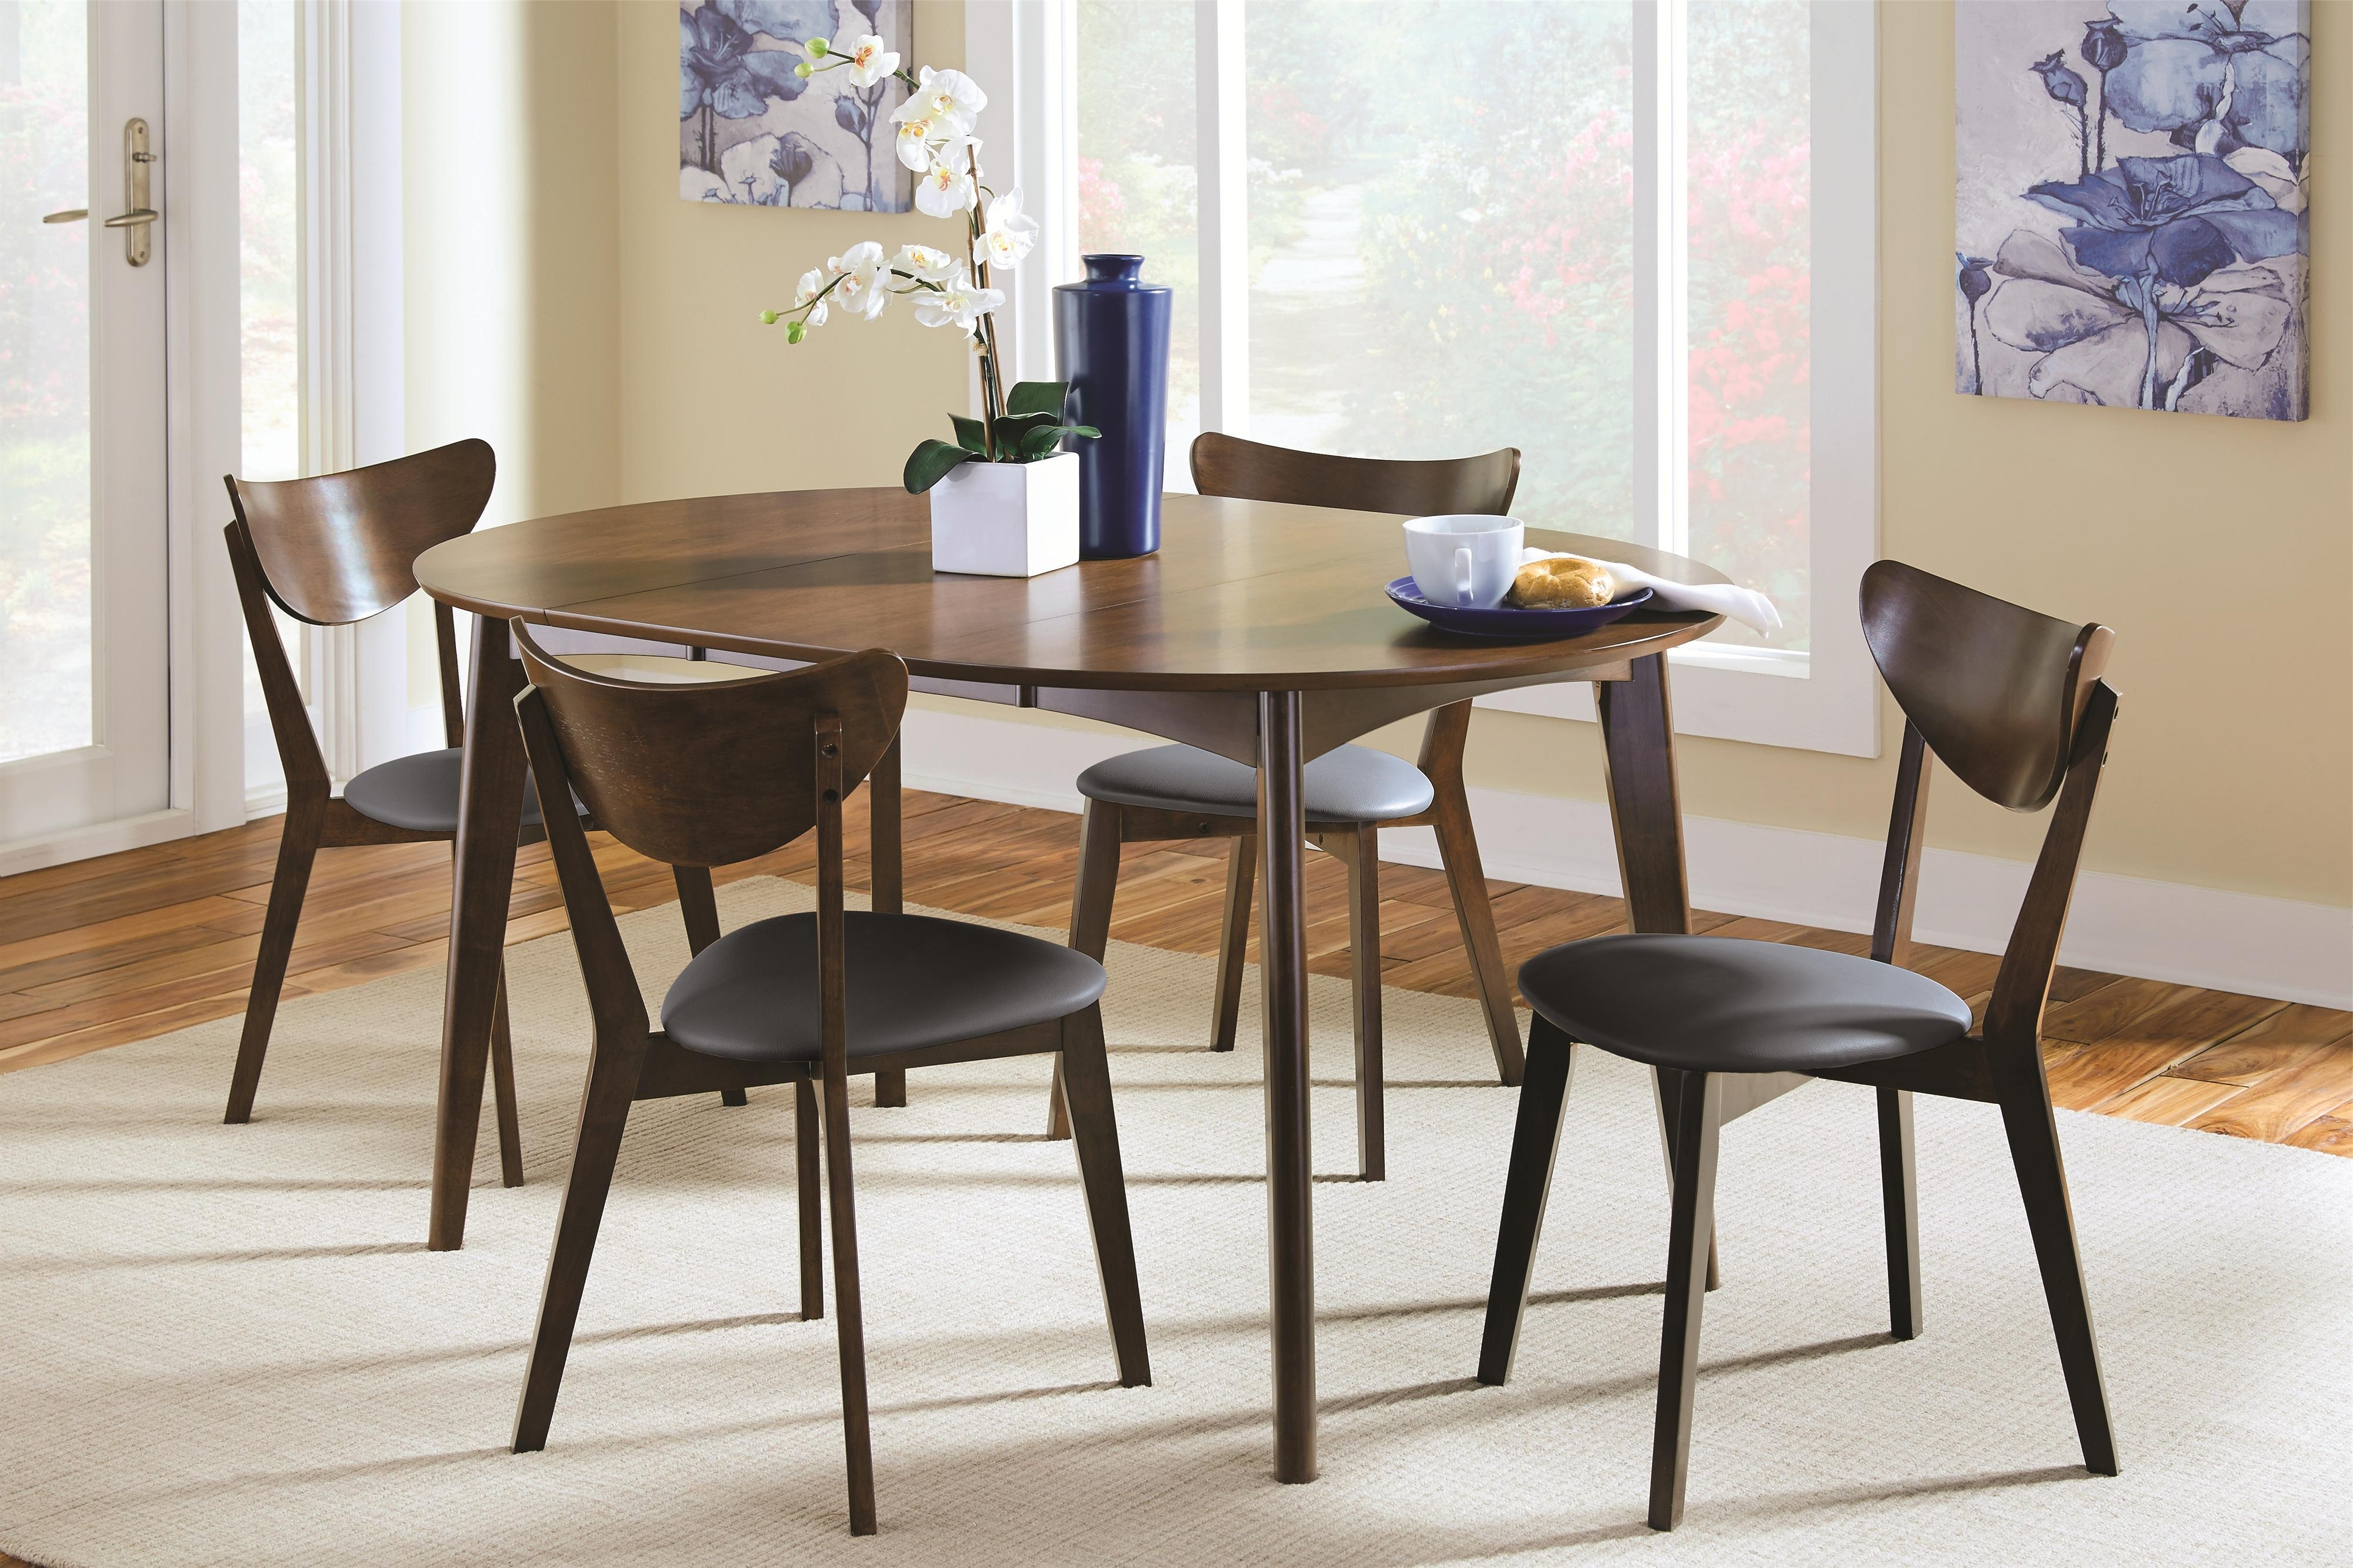 Contemporary Dining Room Tables And Chairs Regarding 2017 Coaster Malone Mid Century Modern 5 Piece Solid Wood Dining Set (View 11 of 25)